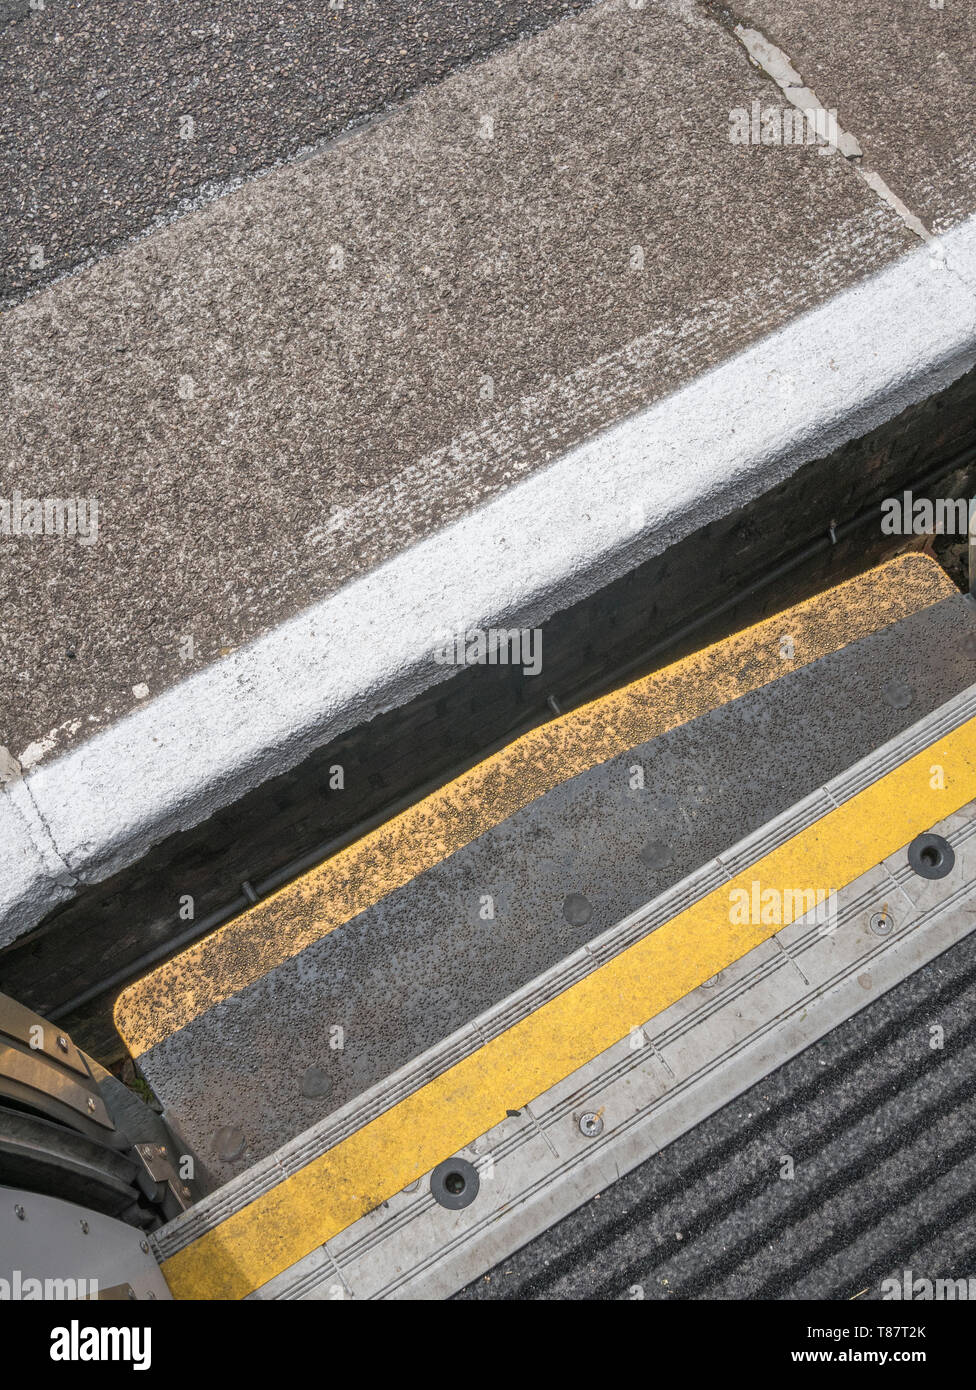 Gap between railway platform edge and railway carriage step painted yellow. Metaphor Mind the Gap, watch your step, gender gap, wage gap, warning. - Stock Image